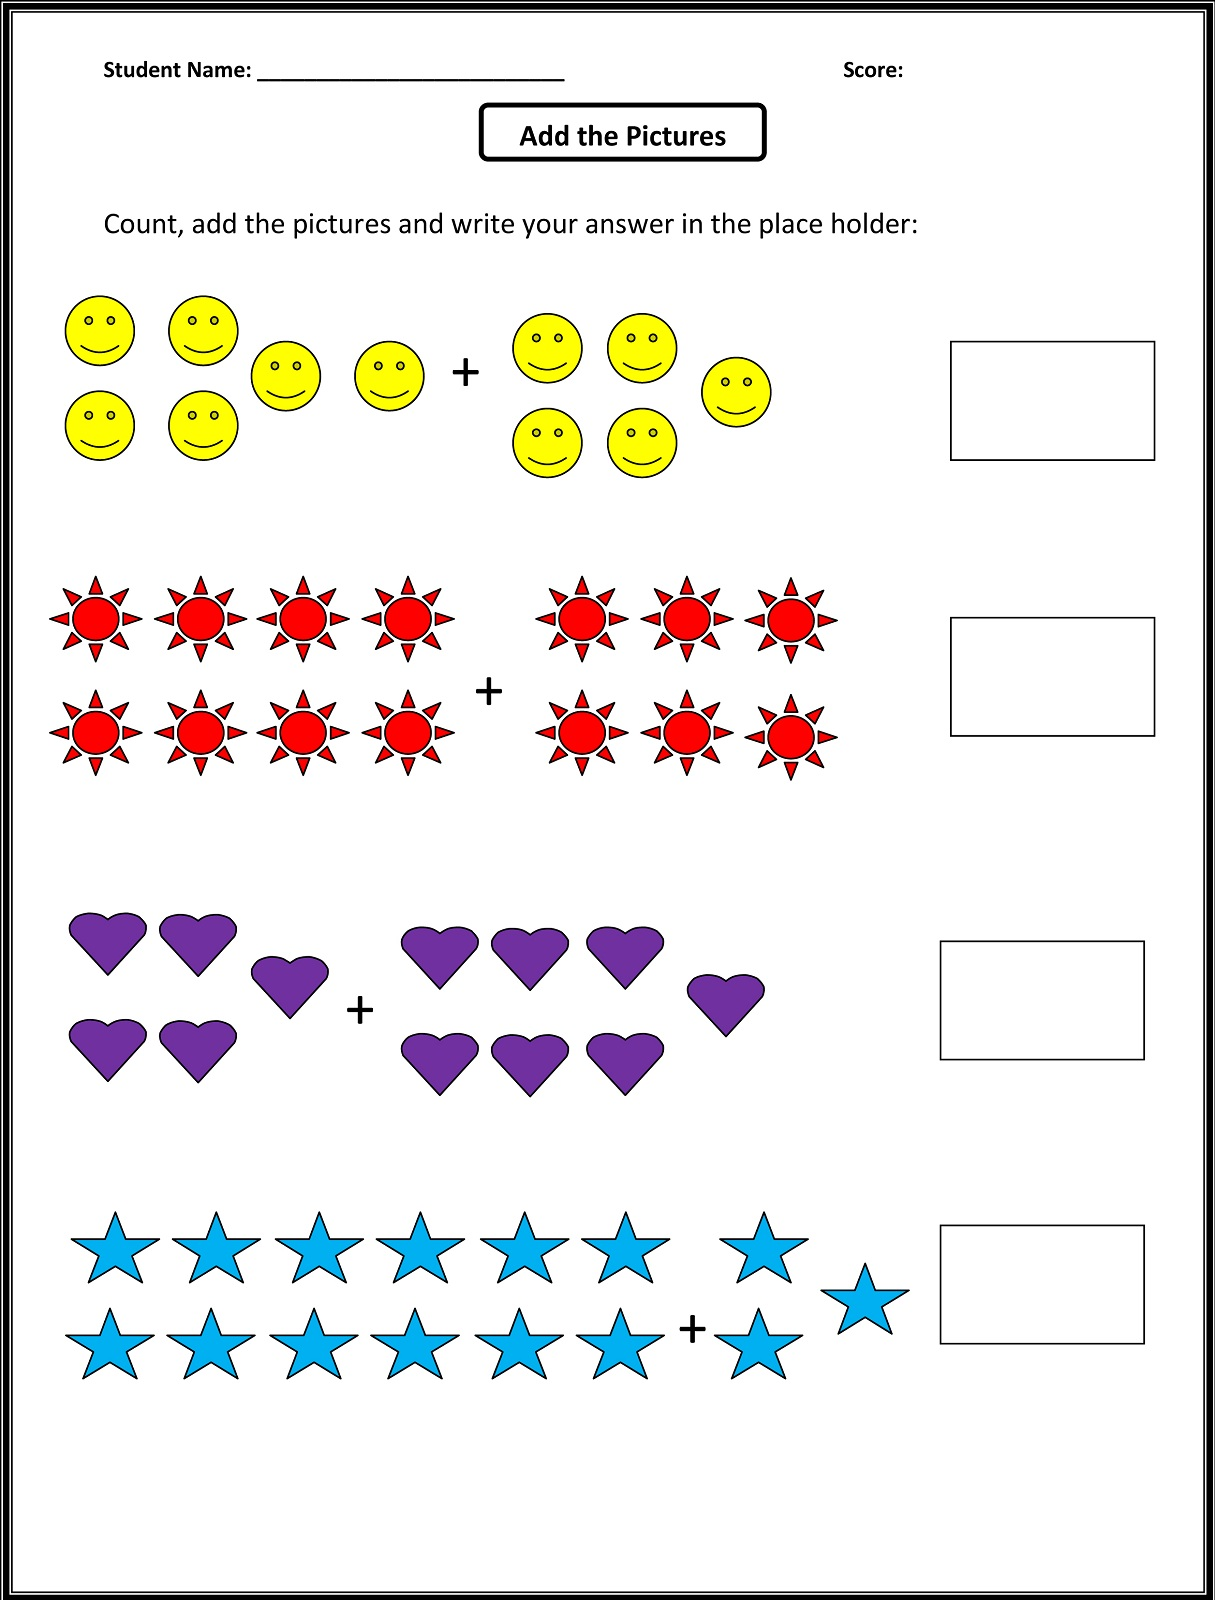 Worksheets for 1st Grade Math – Math for 1st Graders Worksheets